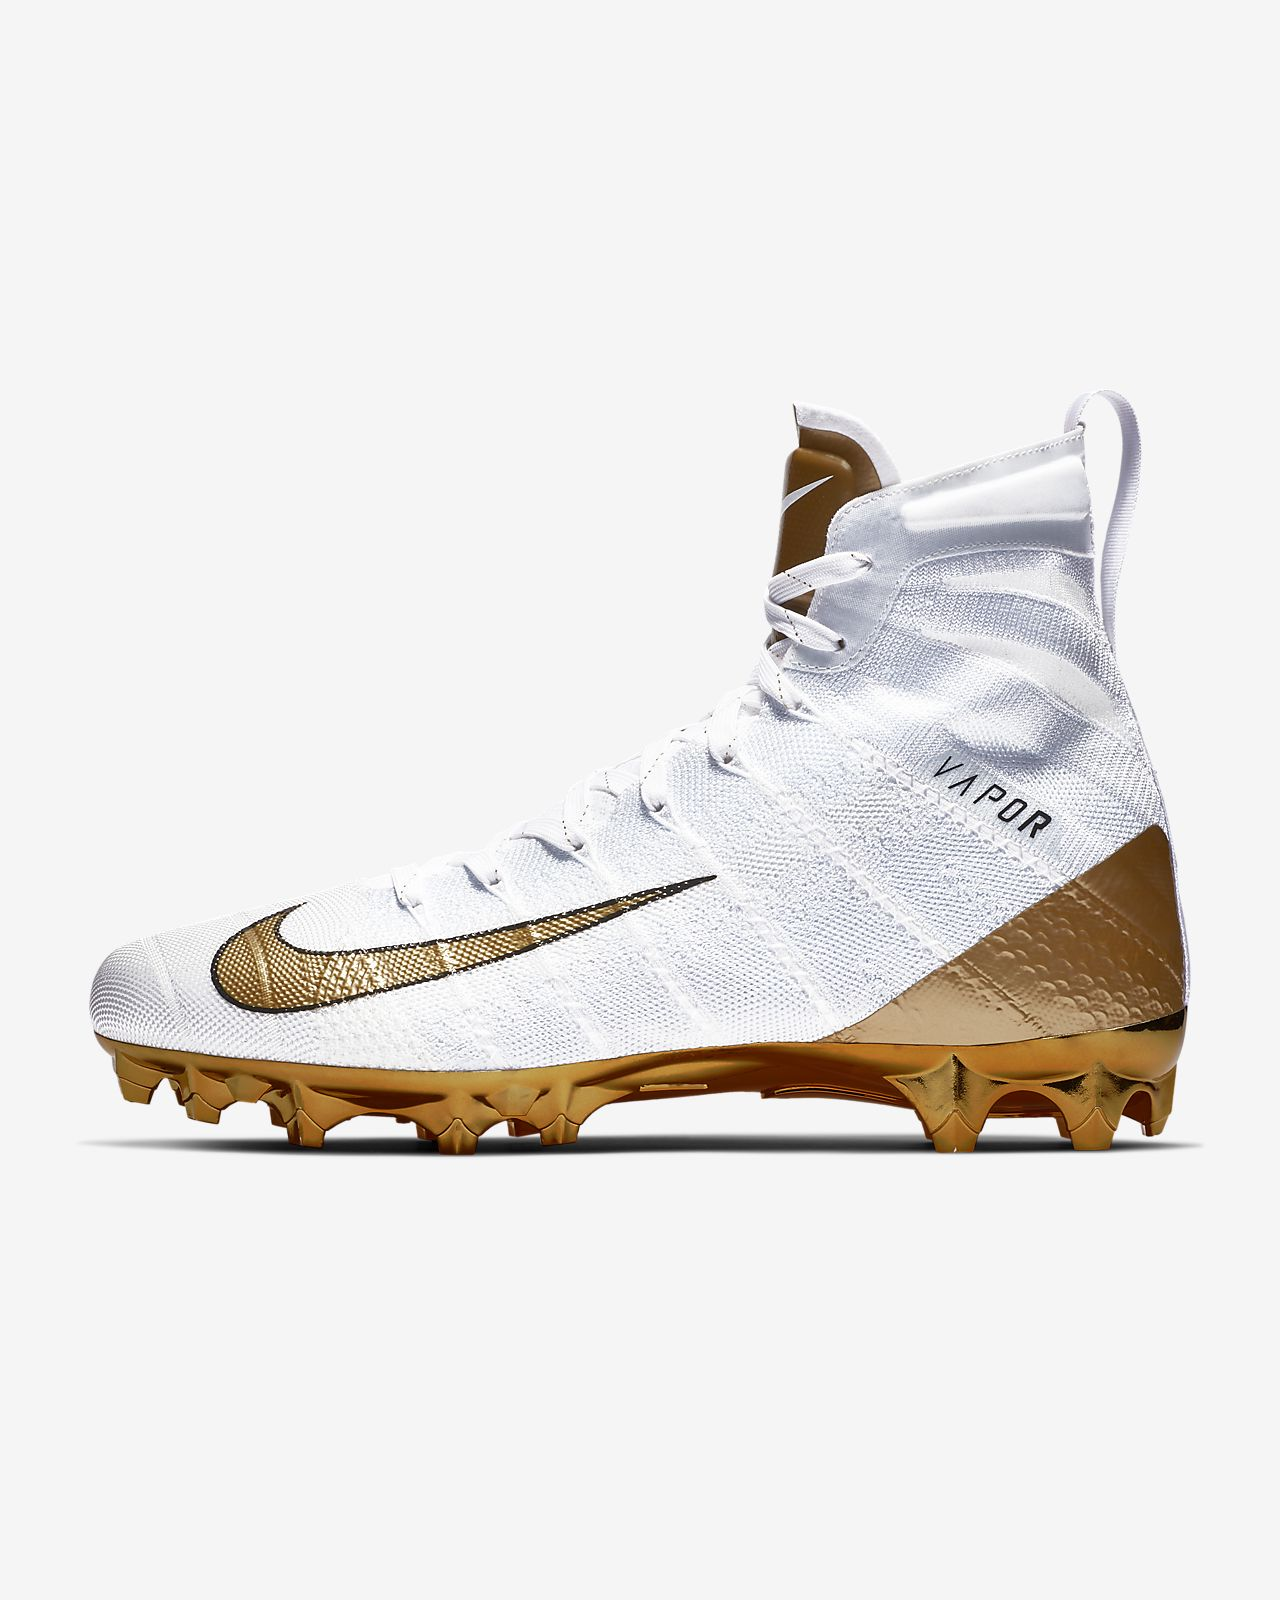 Nike Vapor Untouchable 3 Elite Football Cleat. Nike.com acb6ed0d4